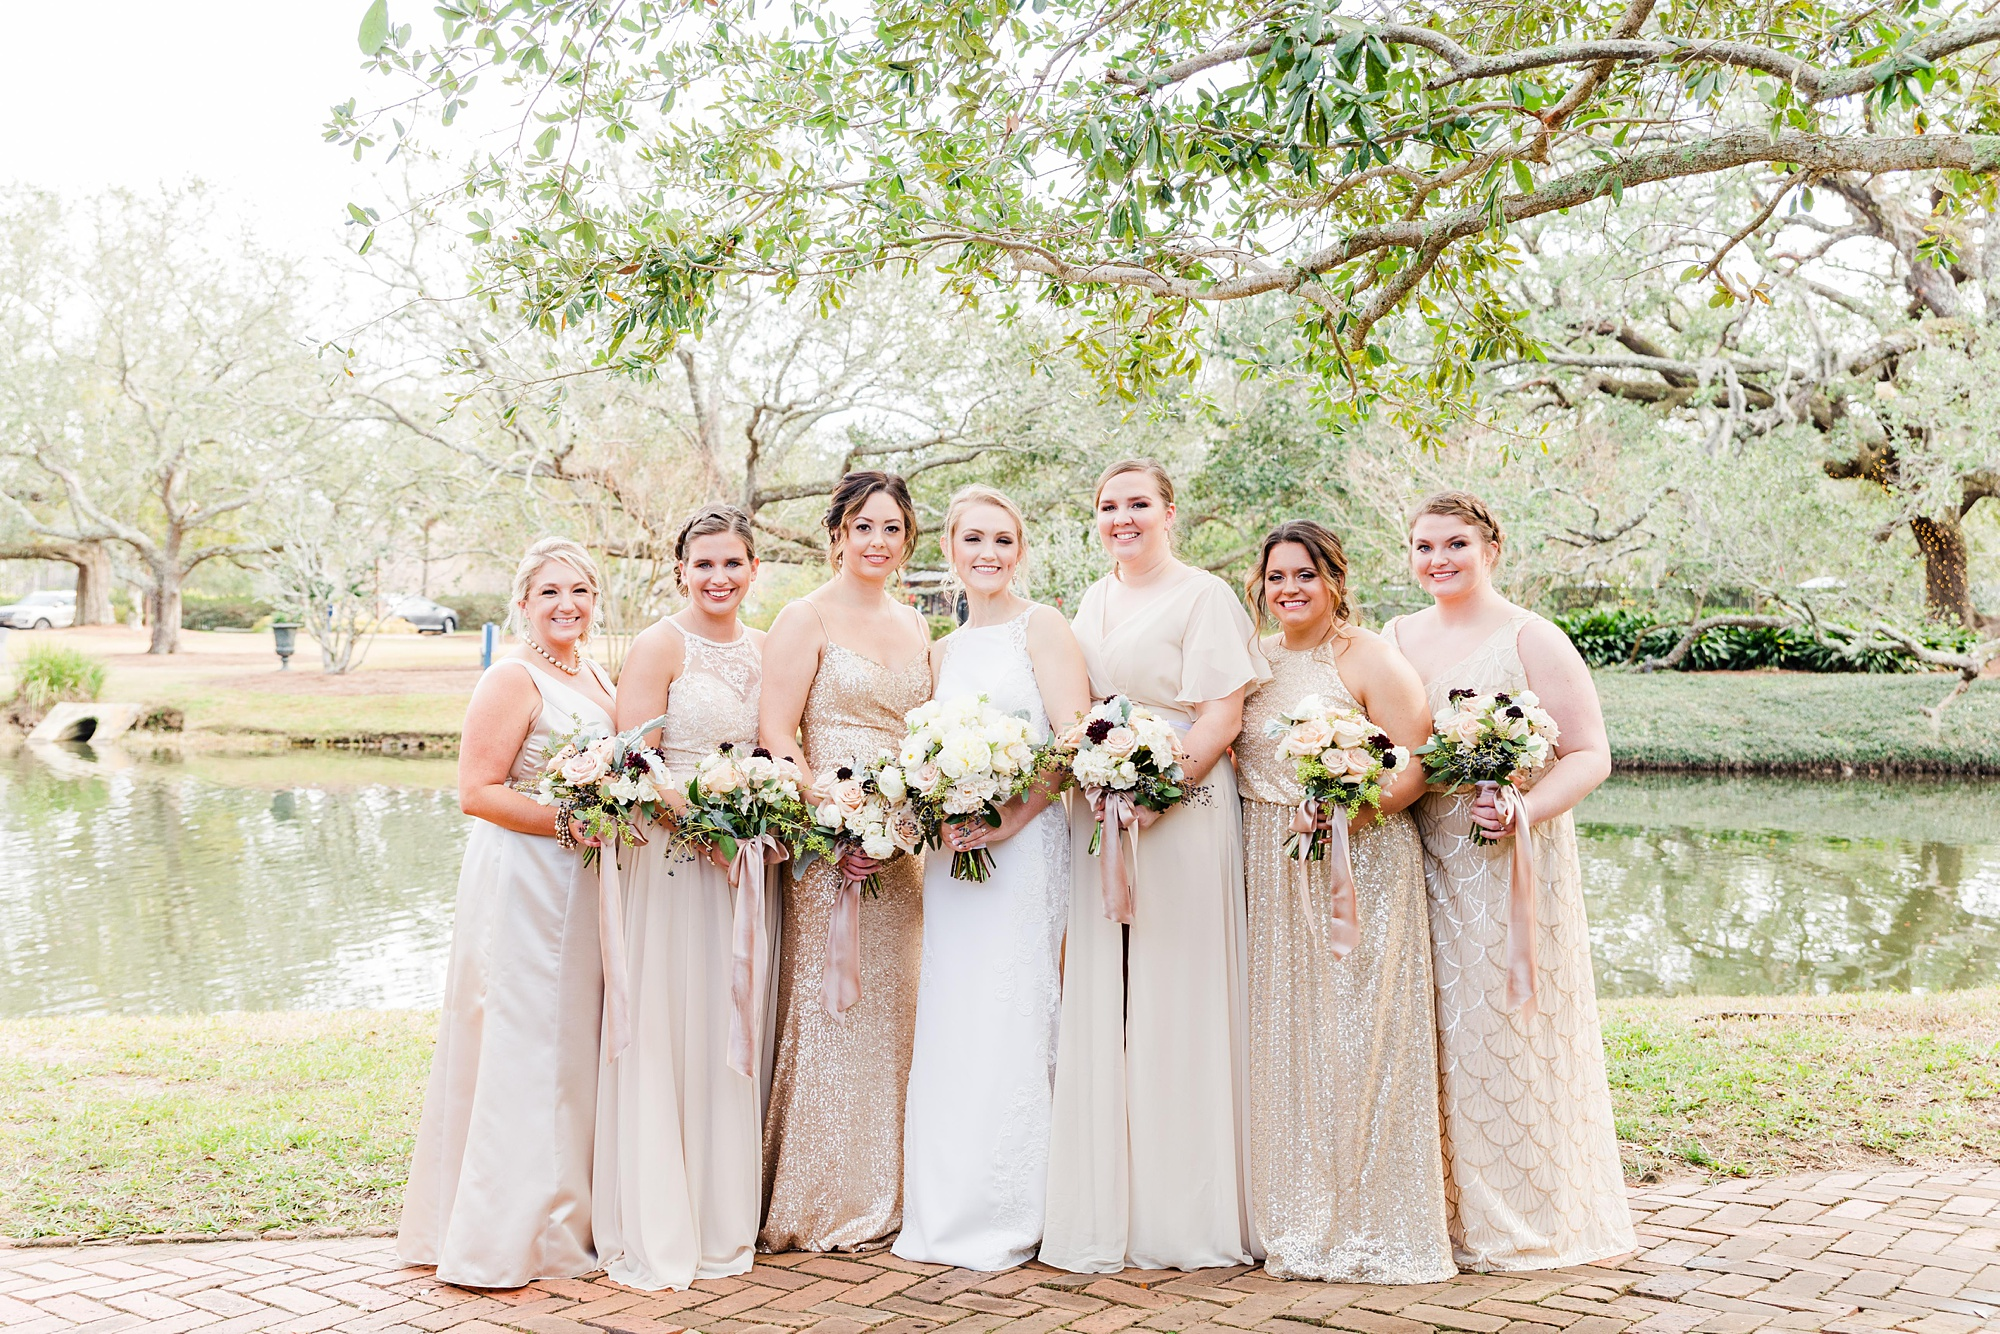 bride poses with bridesmaids in champagne gowns